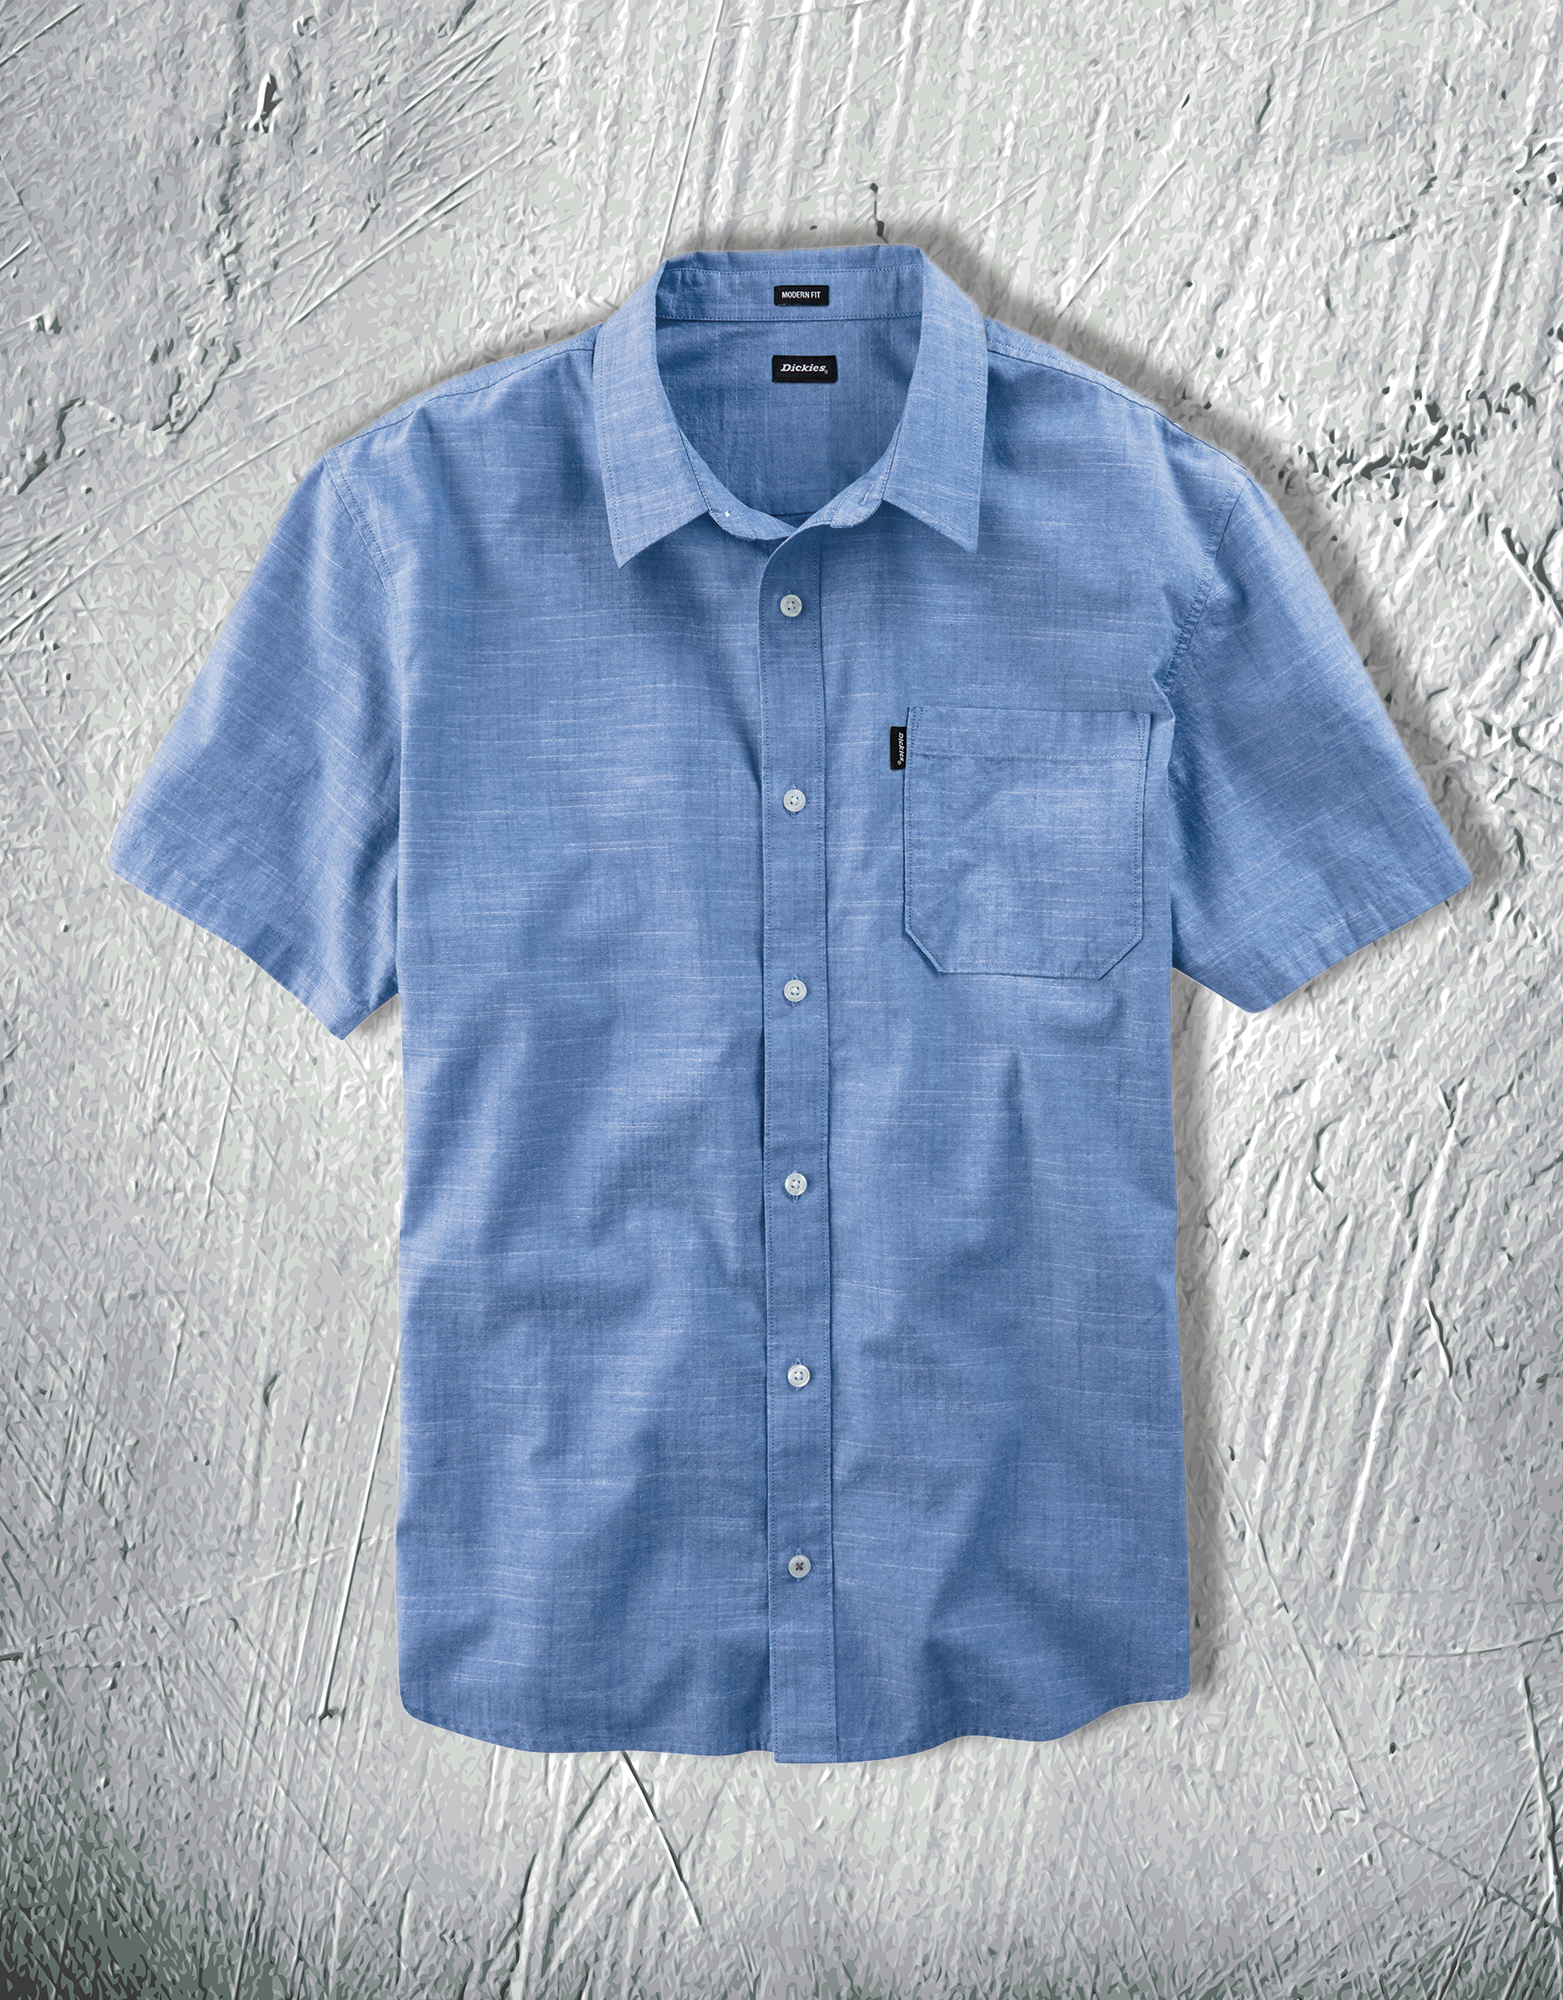 1eac1f8dad7 Nothing says classic quite like a Chambray shirt when the temperatures are  warming up. Dickies  X-Series Chambray Shirt features material made from  100% ...